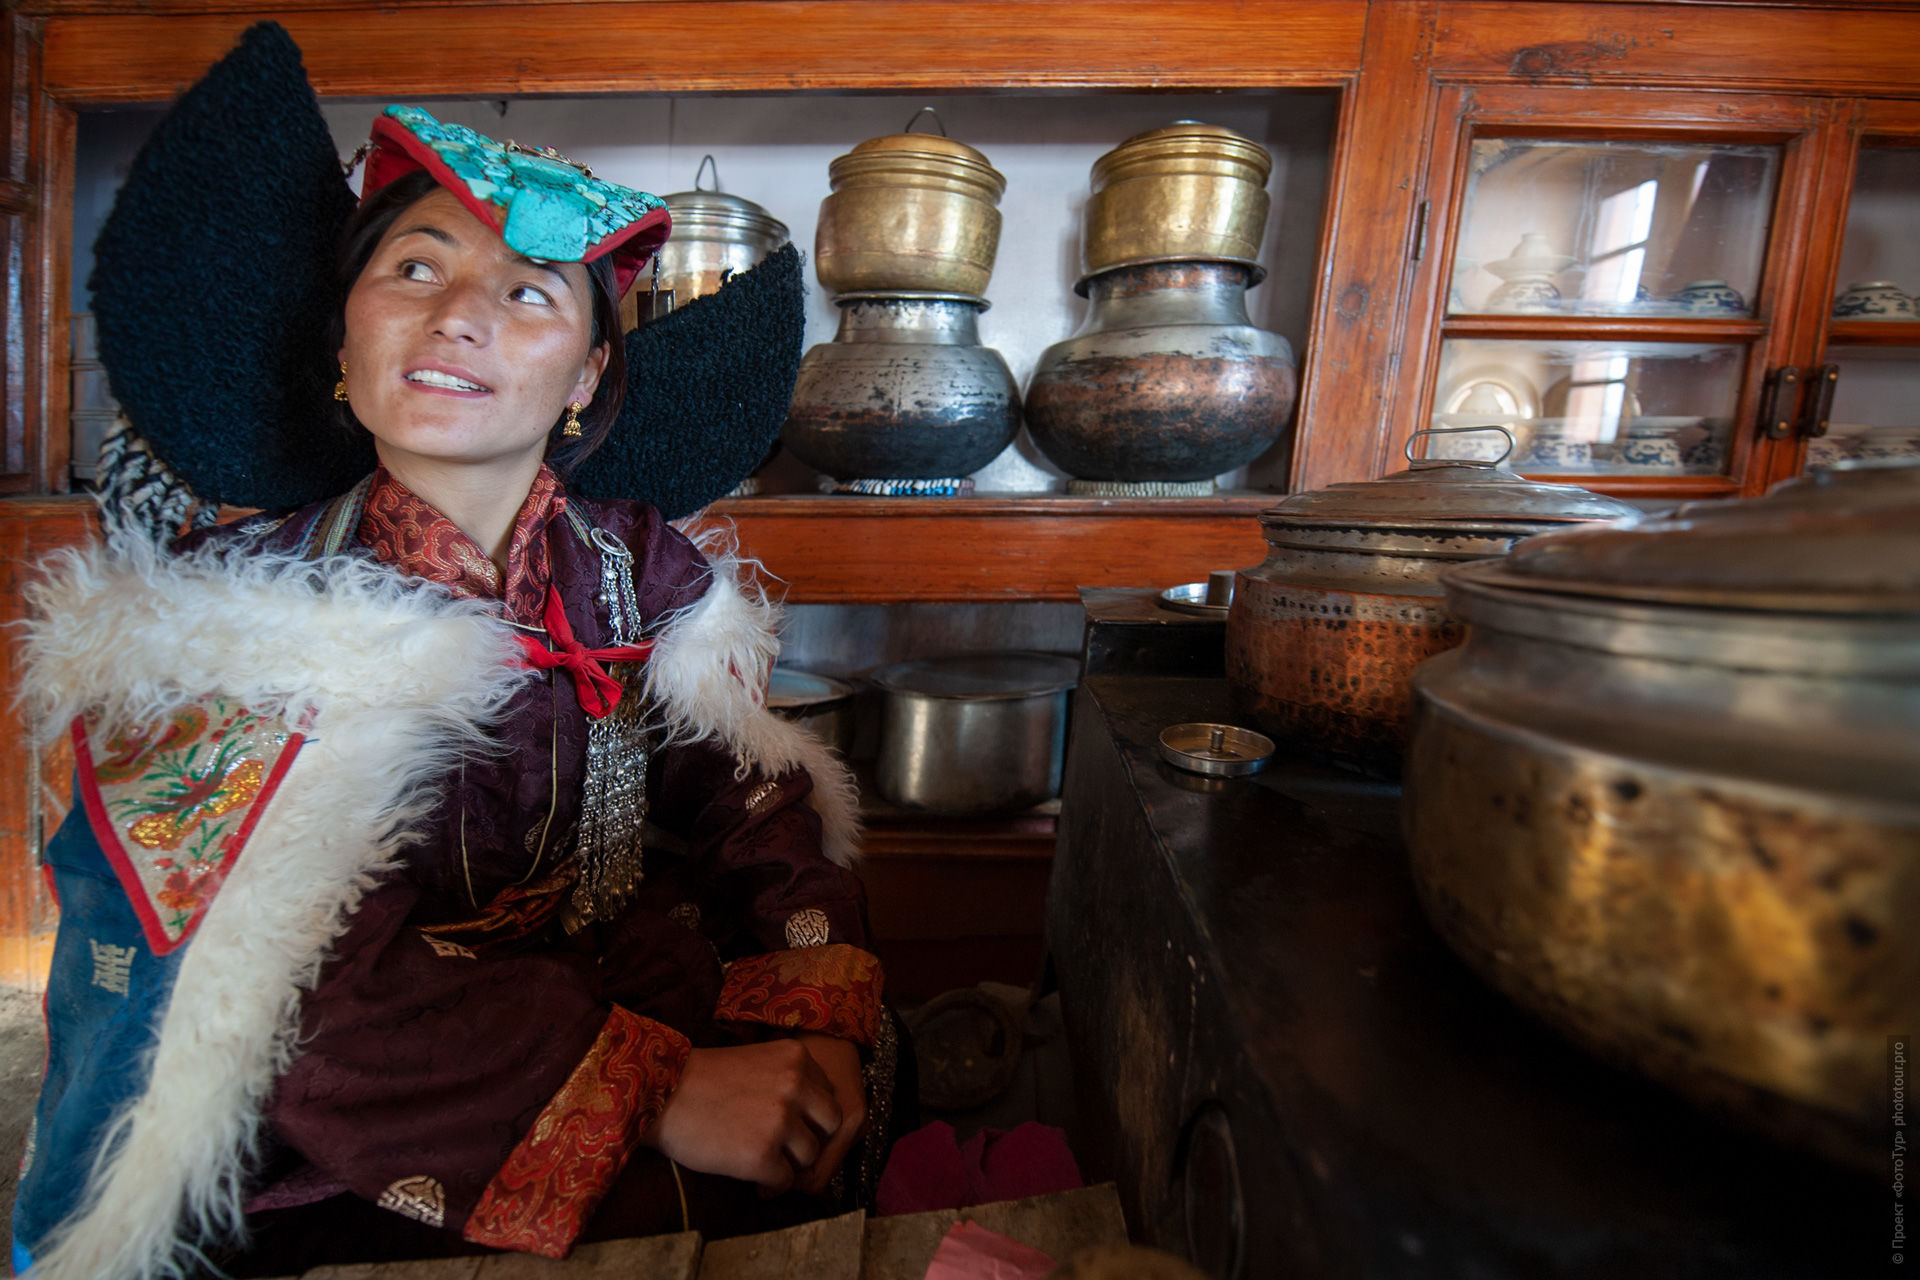 Breakfast in a traditional Ladakh house. Photo tour to Tibet for the Winter Mysteries in Ladakh, Stok and Matho monasteries, 01.03. - 03/10/2020